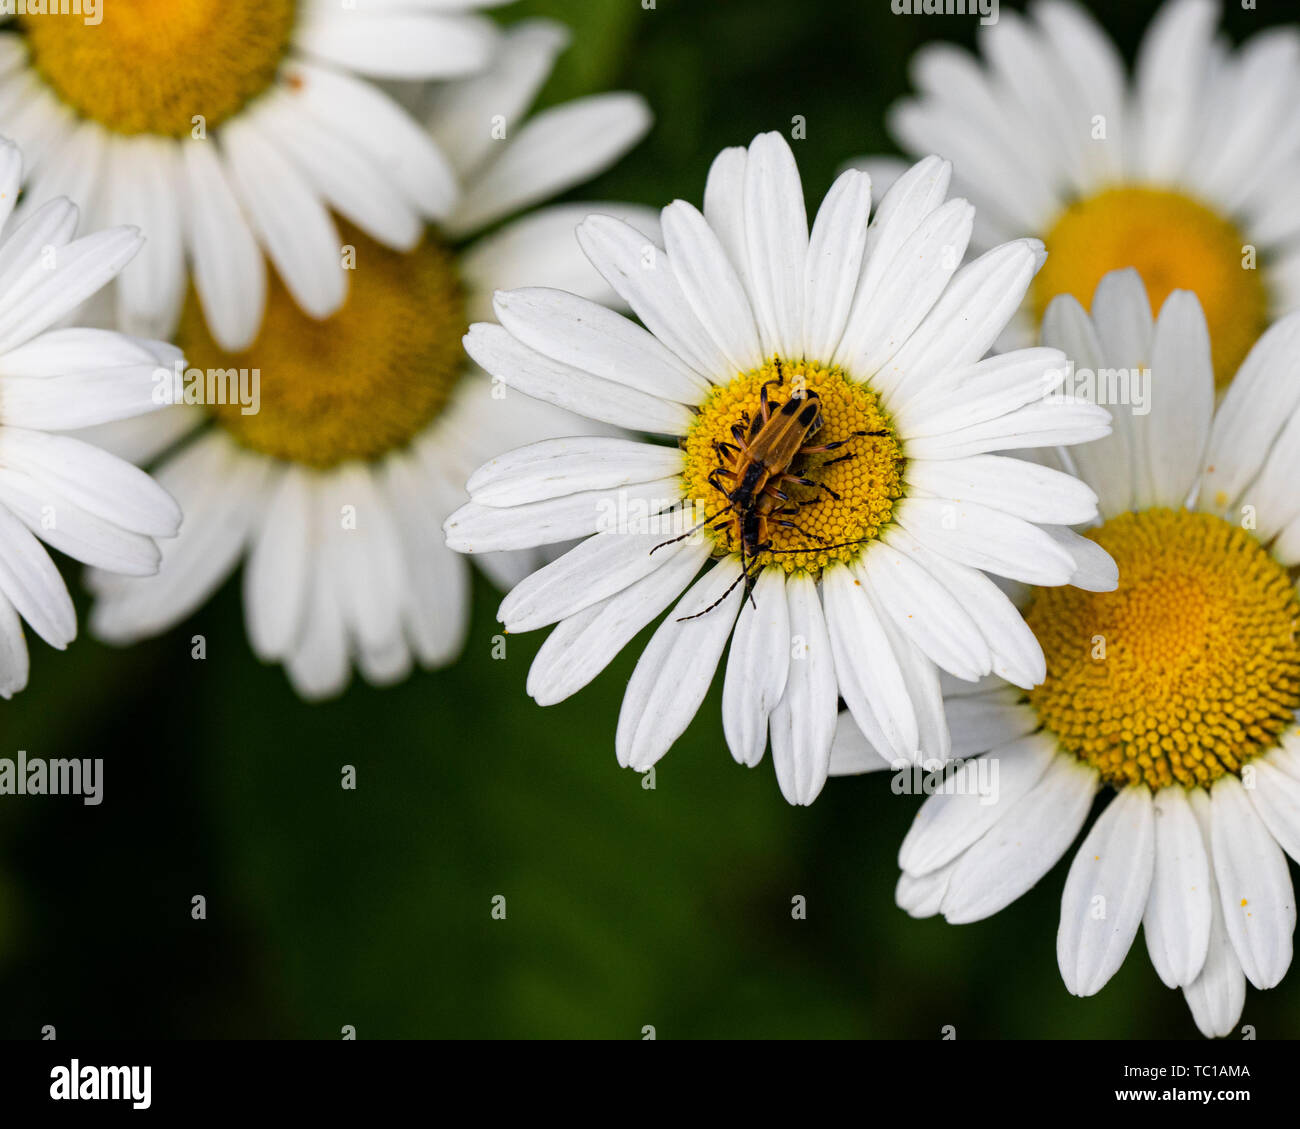 Fireflies get friendly on the center of a daisy in the field. - Stock Image